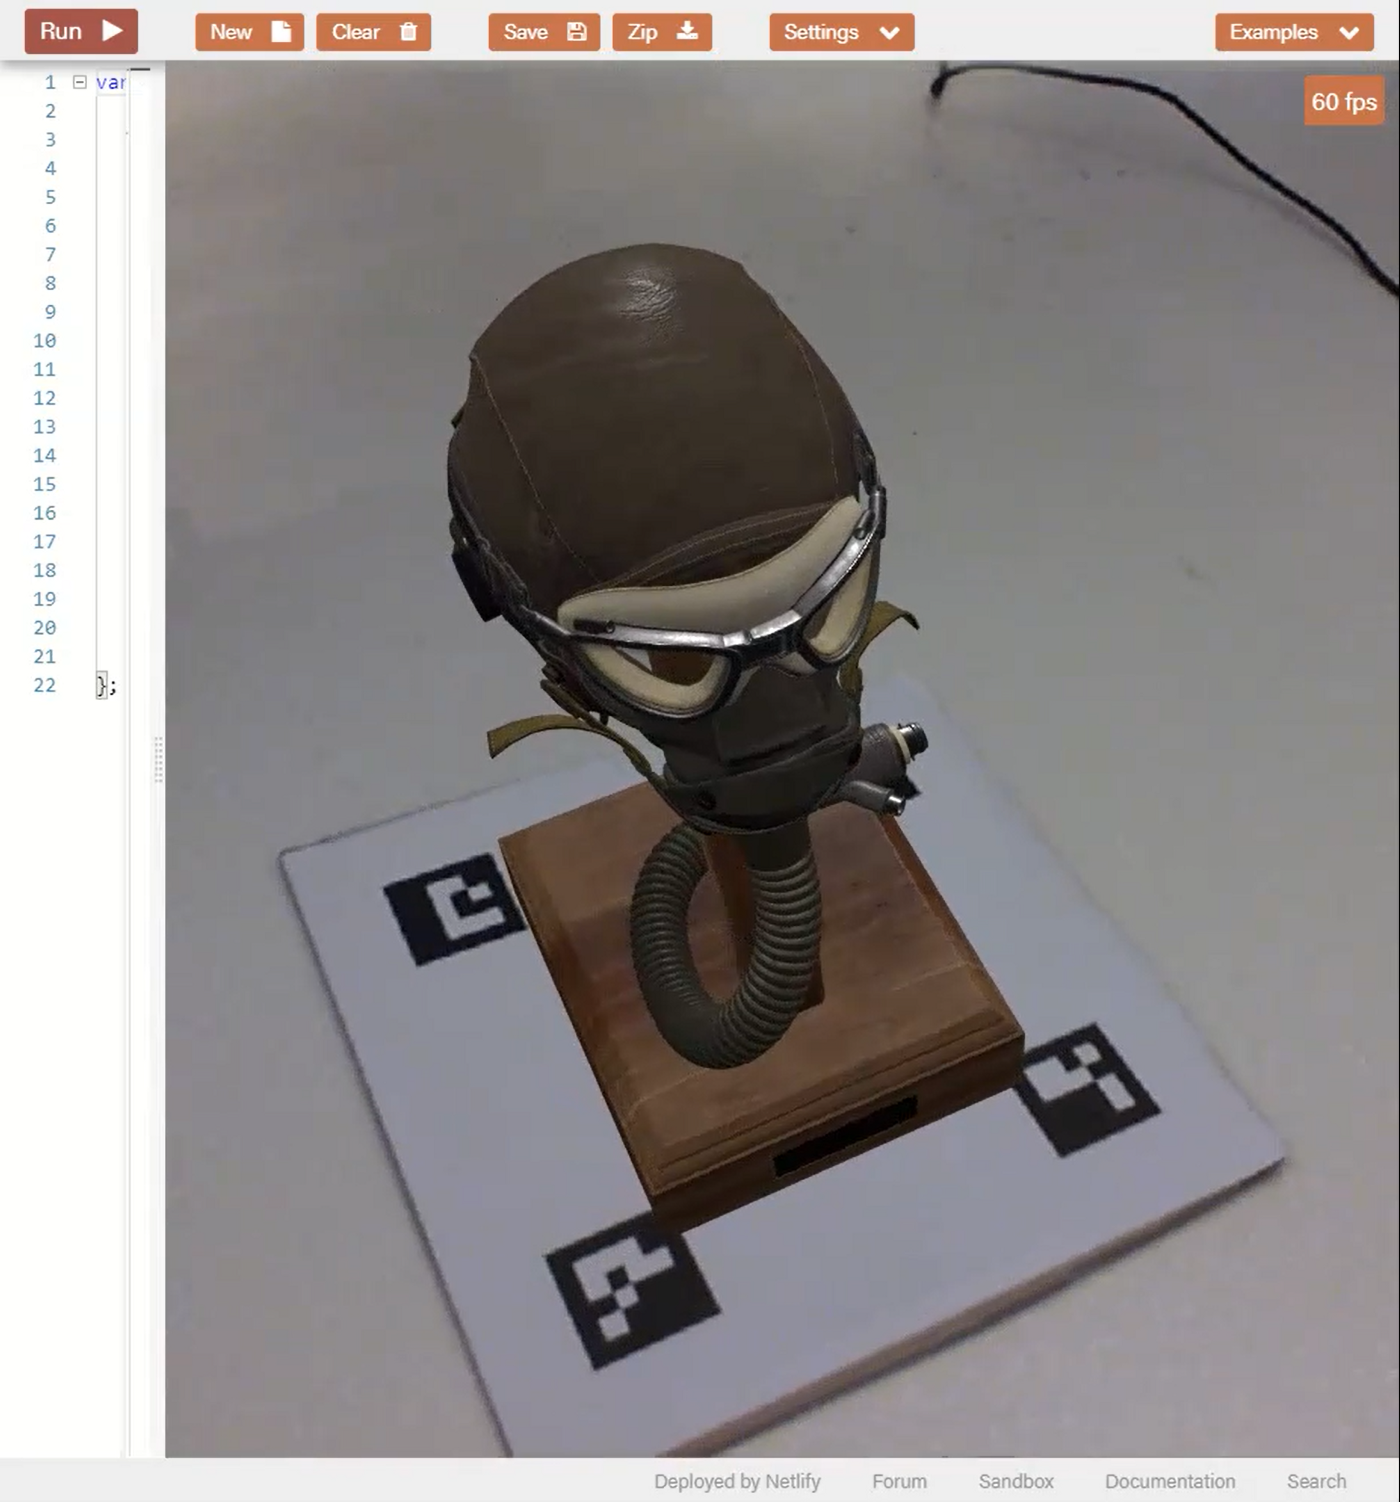 A photo of Fred the object tracking algorithm in action.